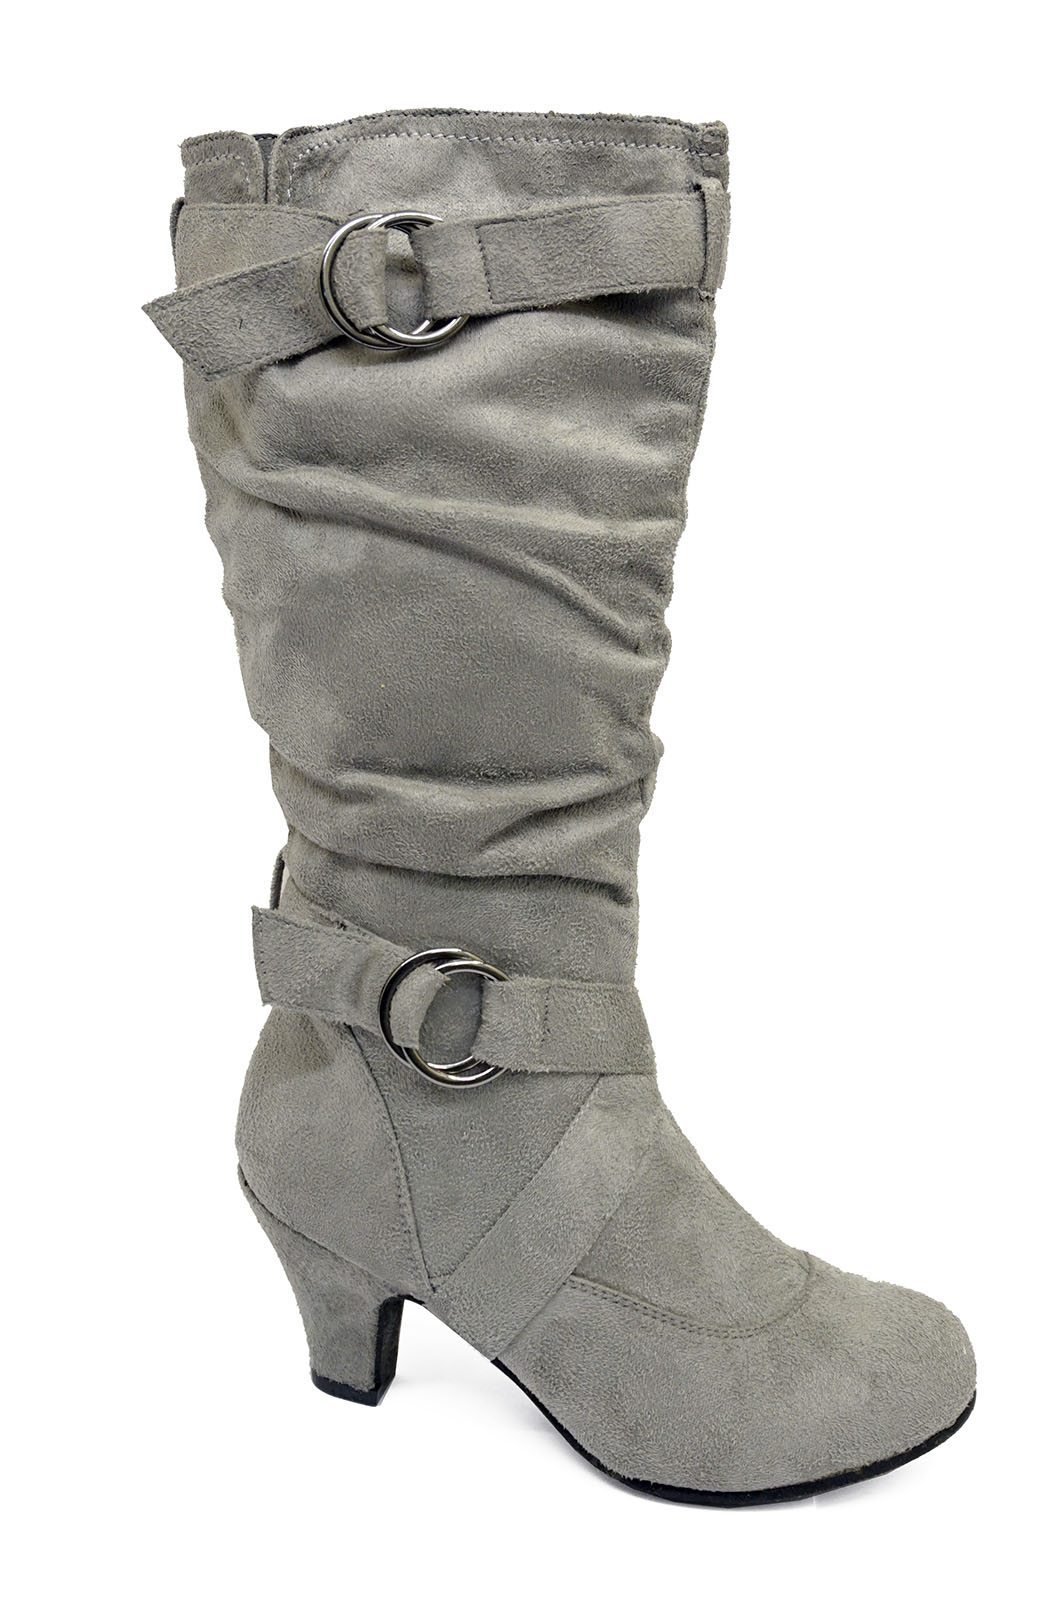 LADIES-GREY-ZIP-UP-BIKER-SLOUCH-RUCHED-TALL-KNEE-CALF-LOW-HEEL-BOOTS-SHOES-4-10 thumbnail 17